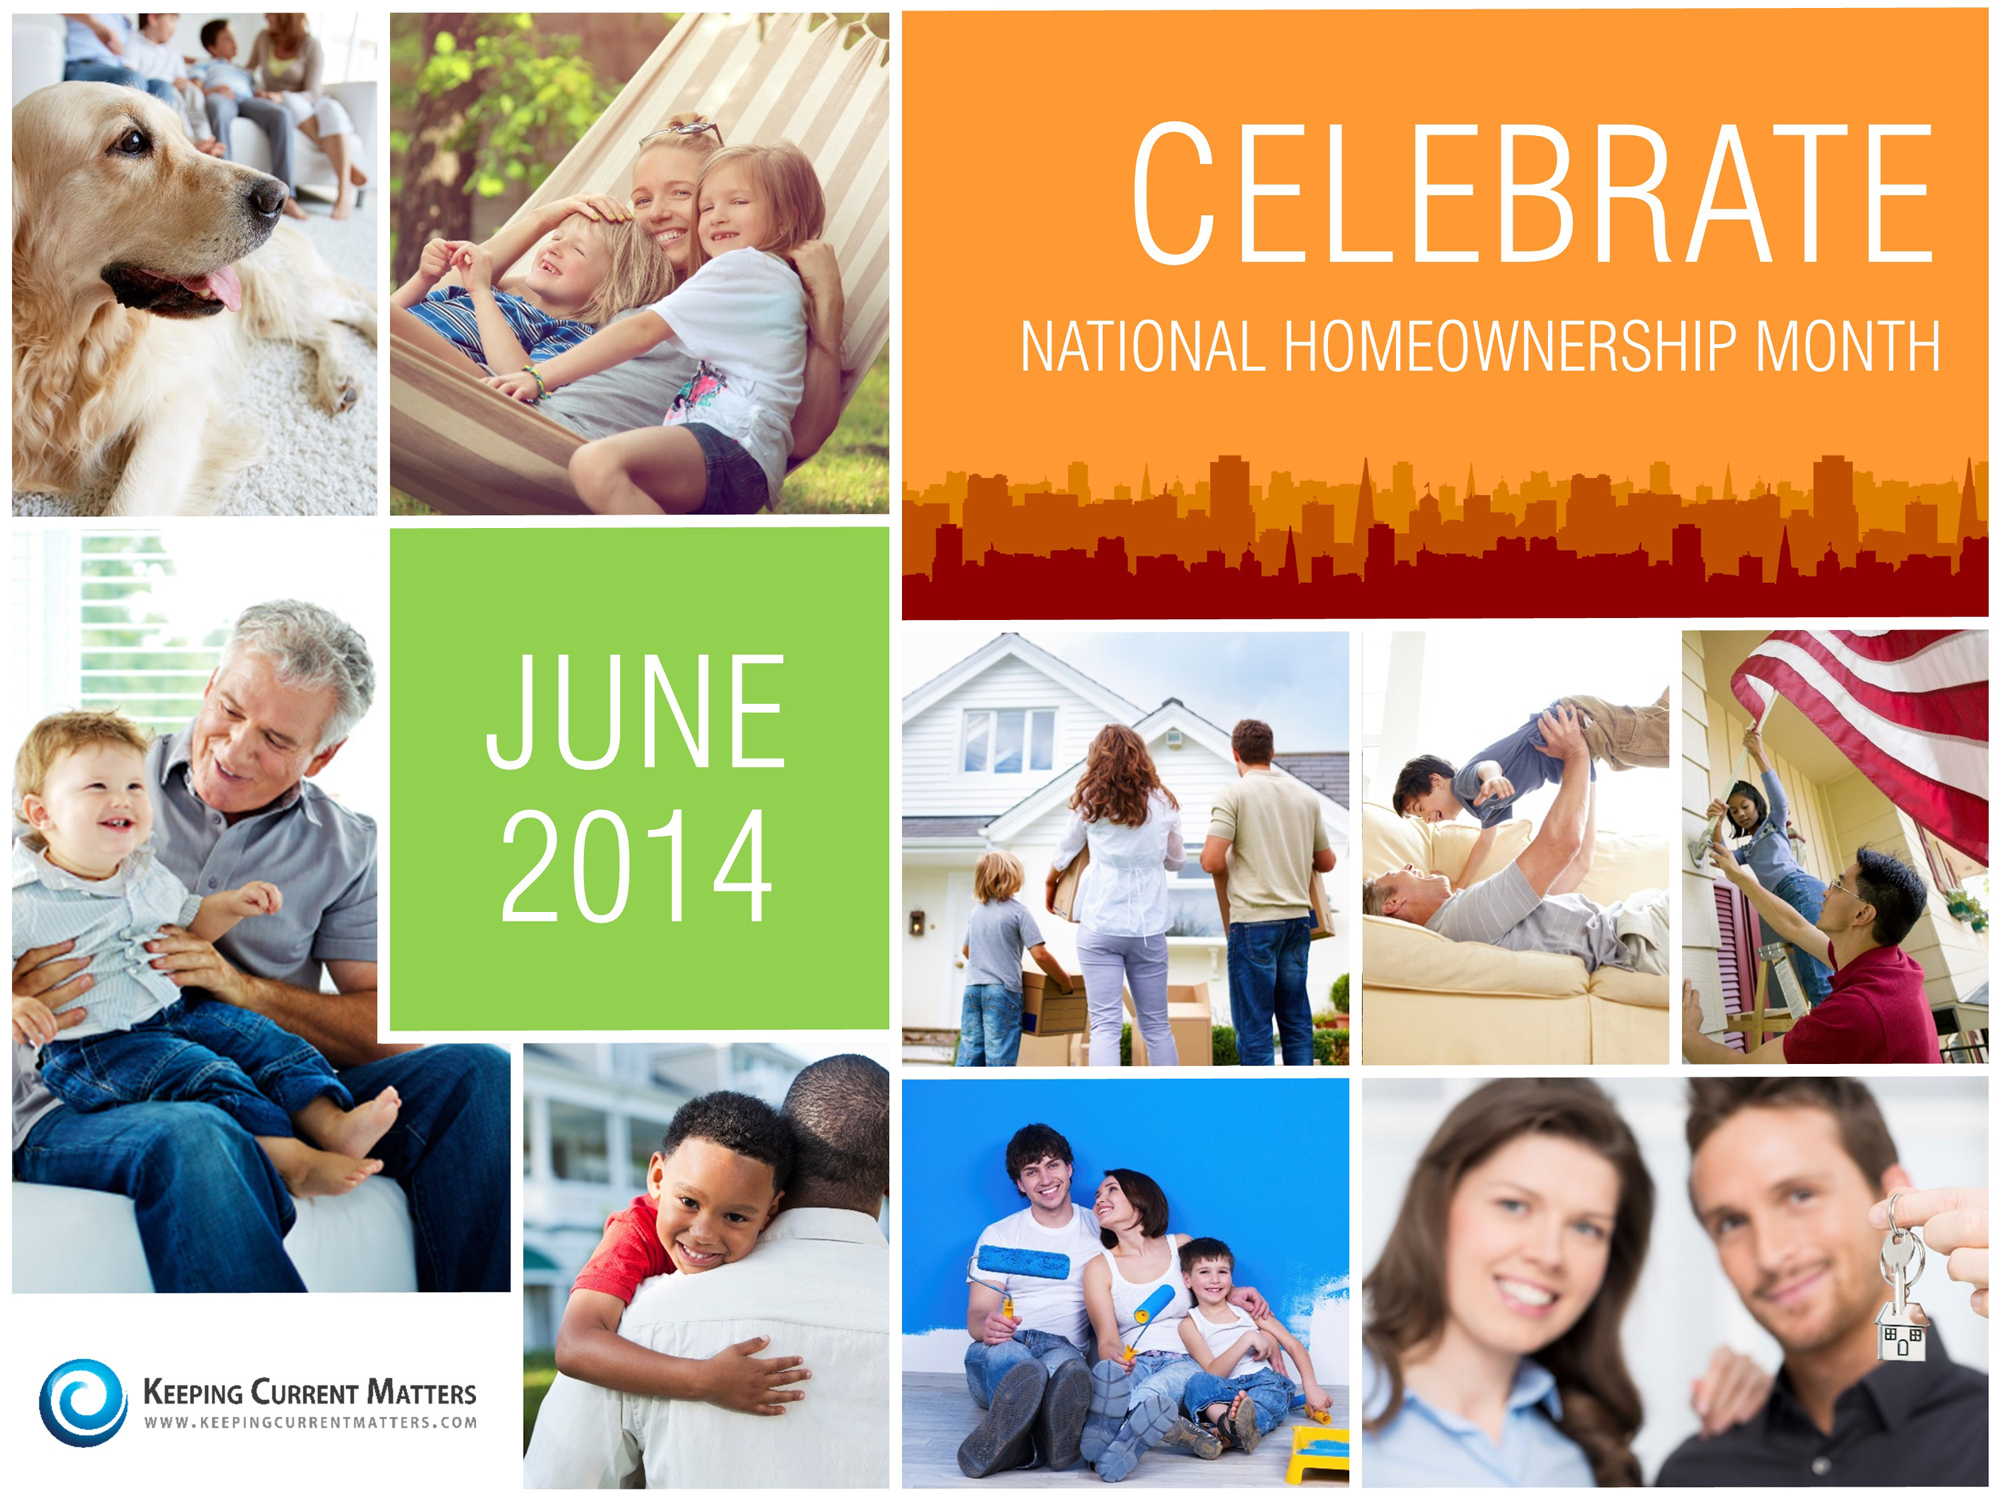 June is National Homeownership Month!!